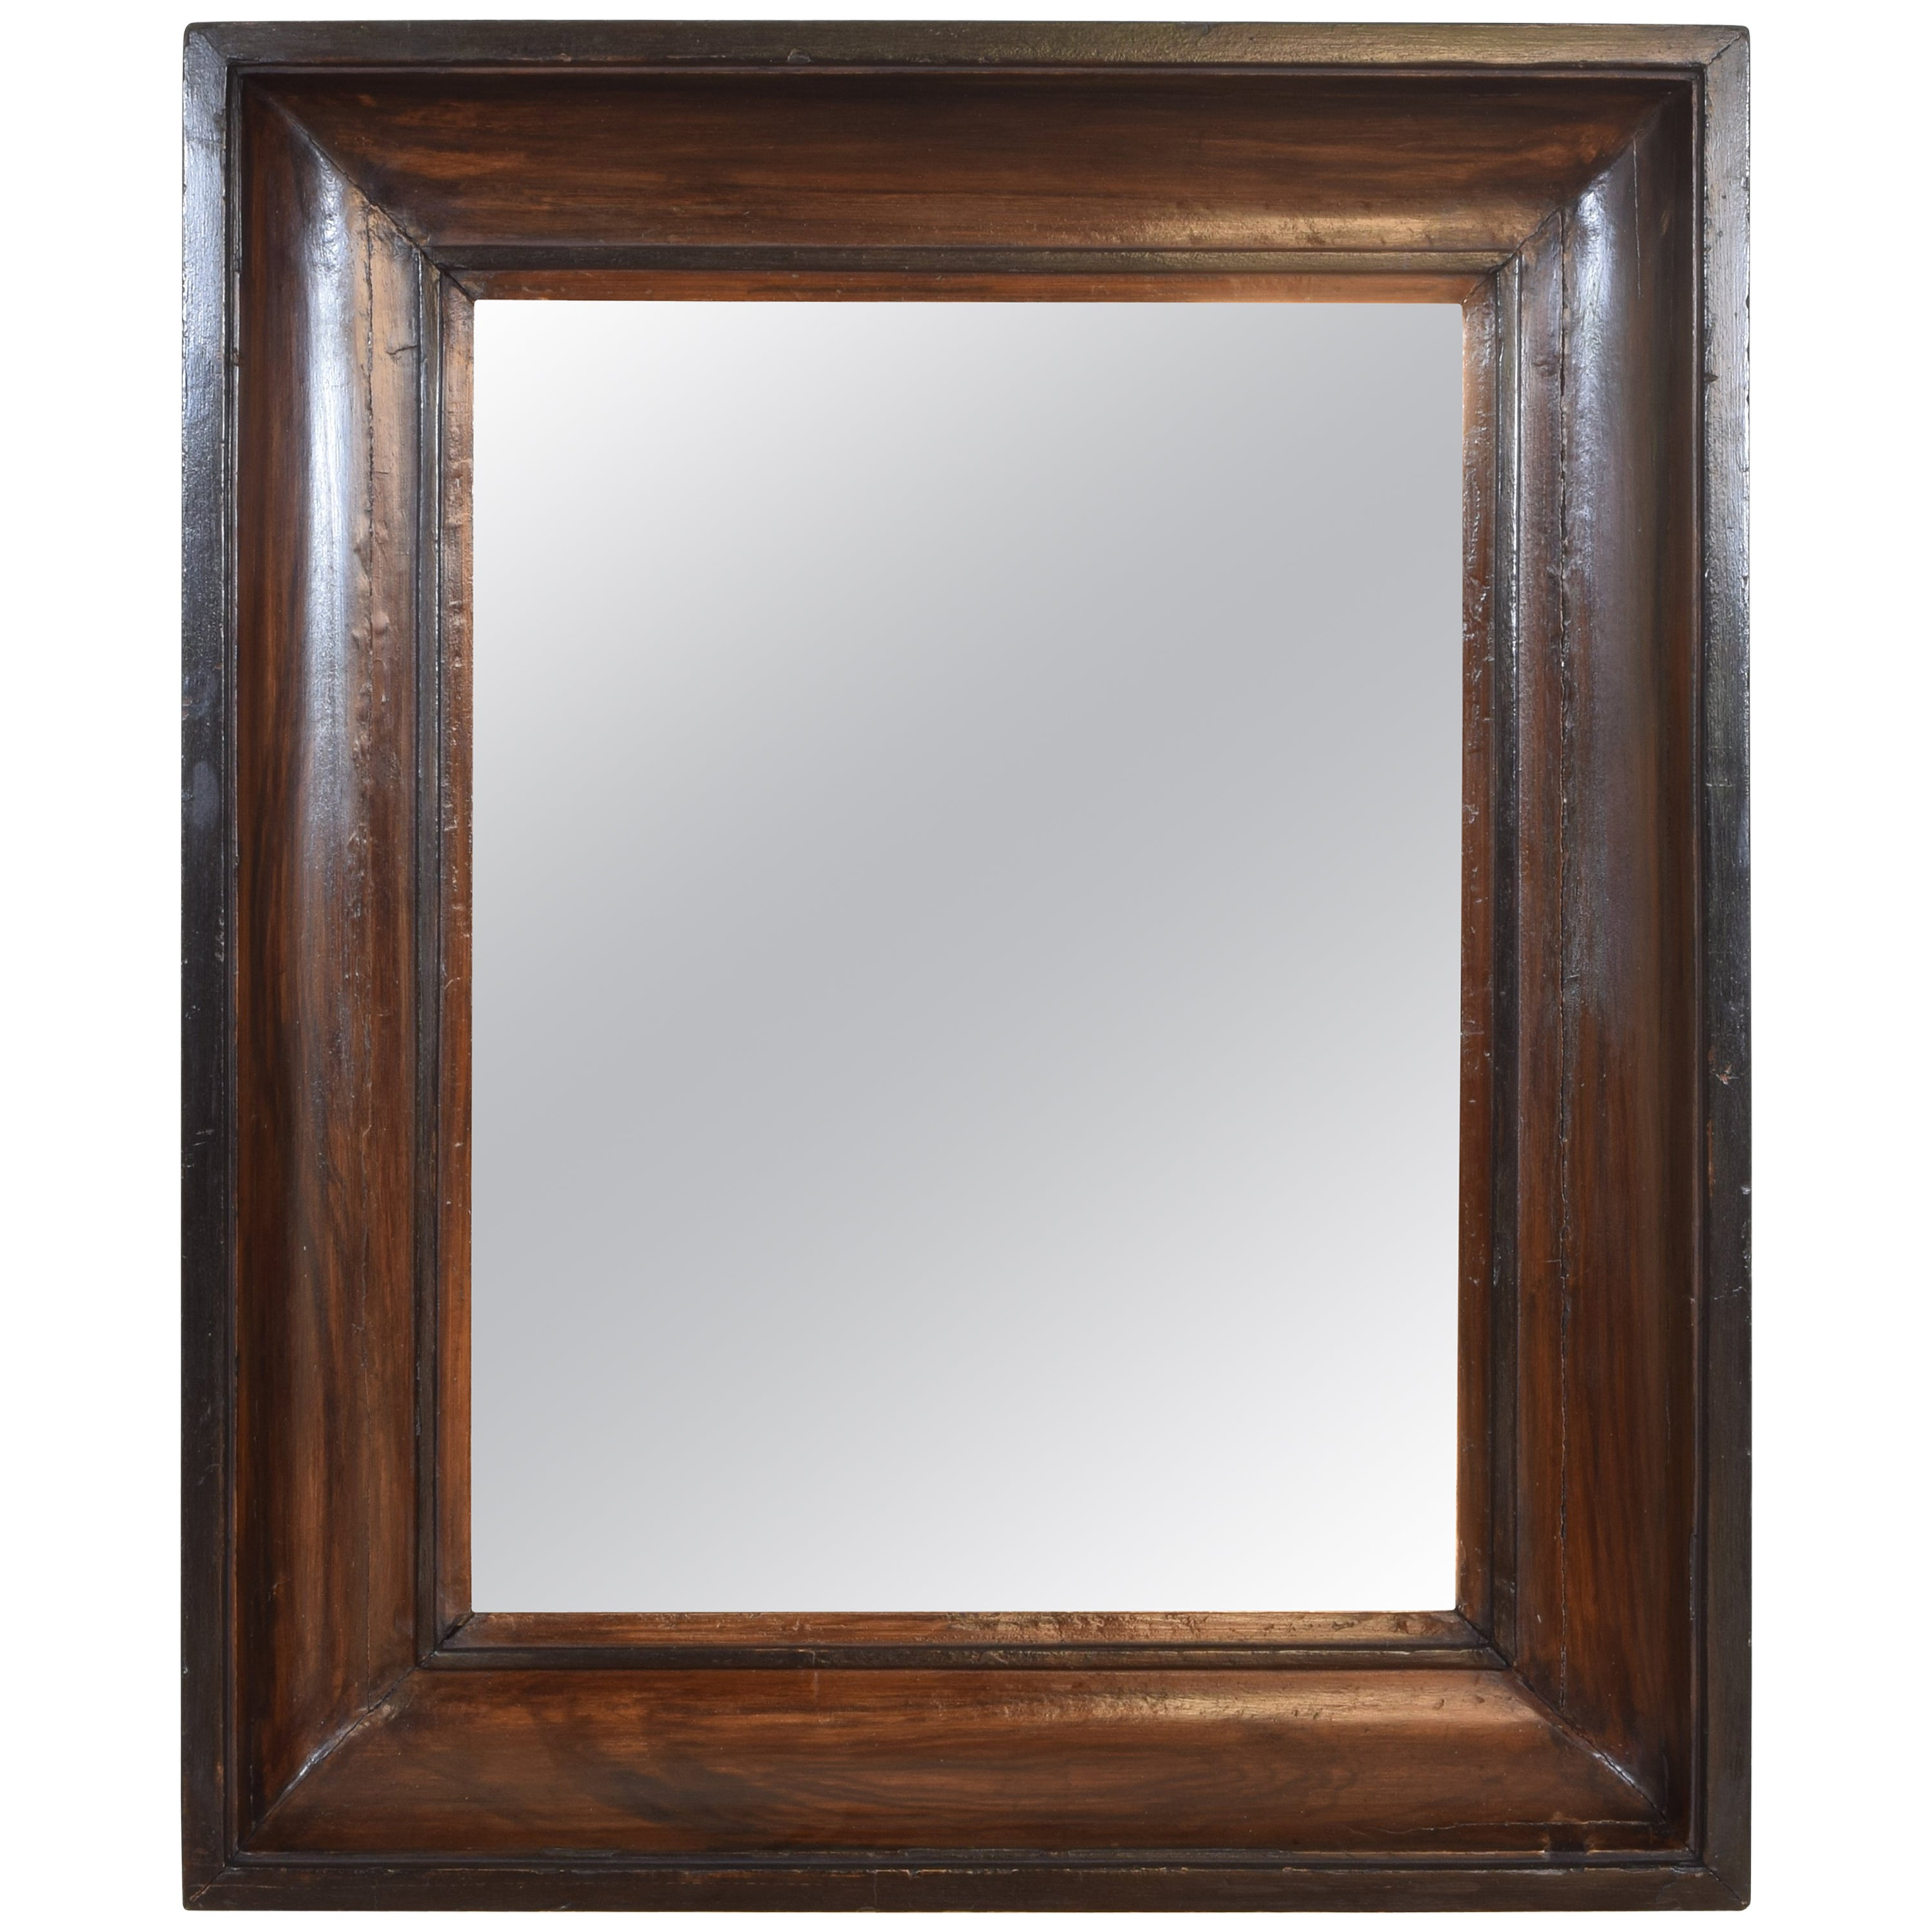 French Faux Grain Painted and Ebonized Wall Mirror, 19th cen.